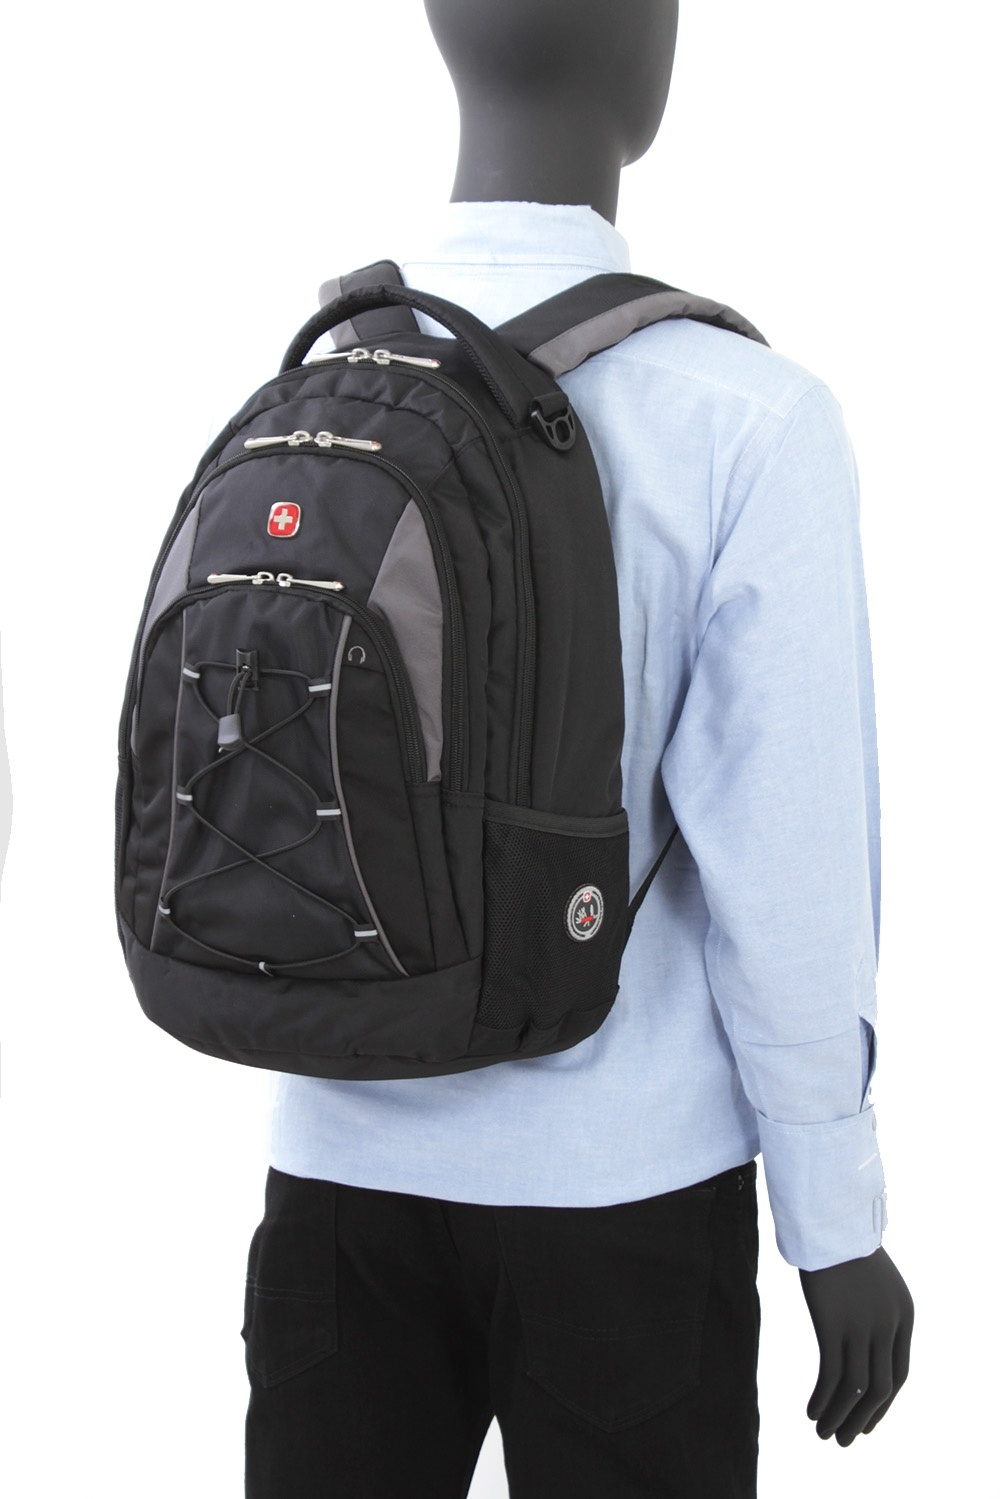 Swiss Gear Backpack Price In India - Crazy Backpacks